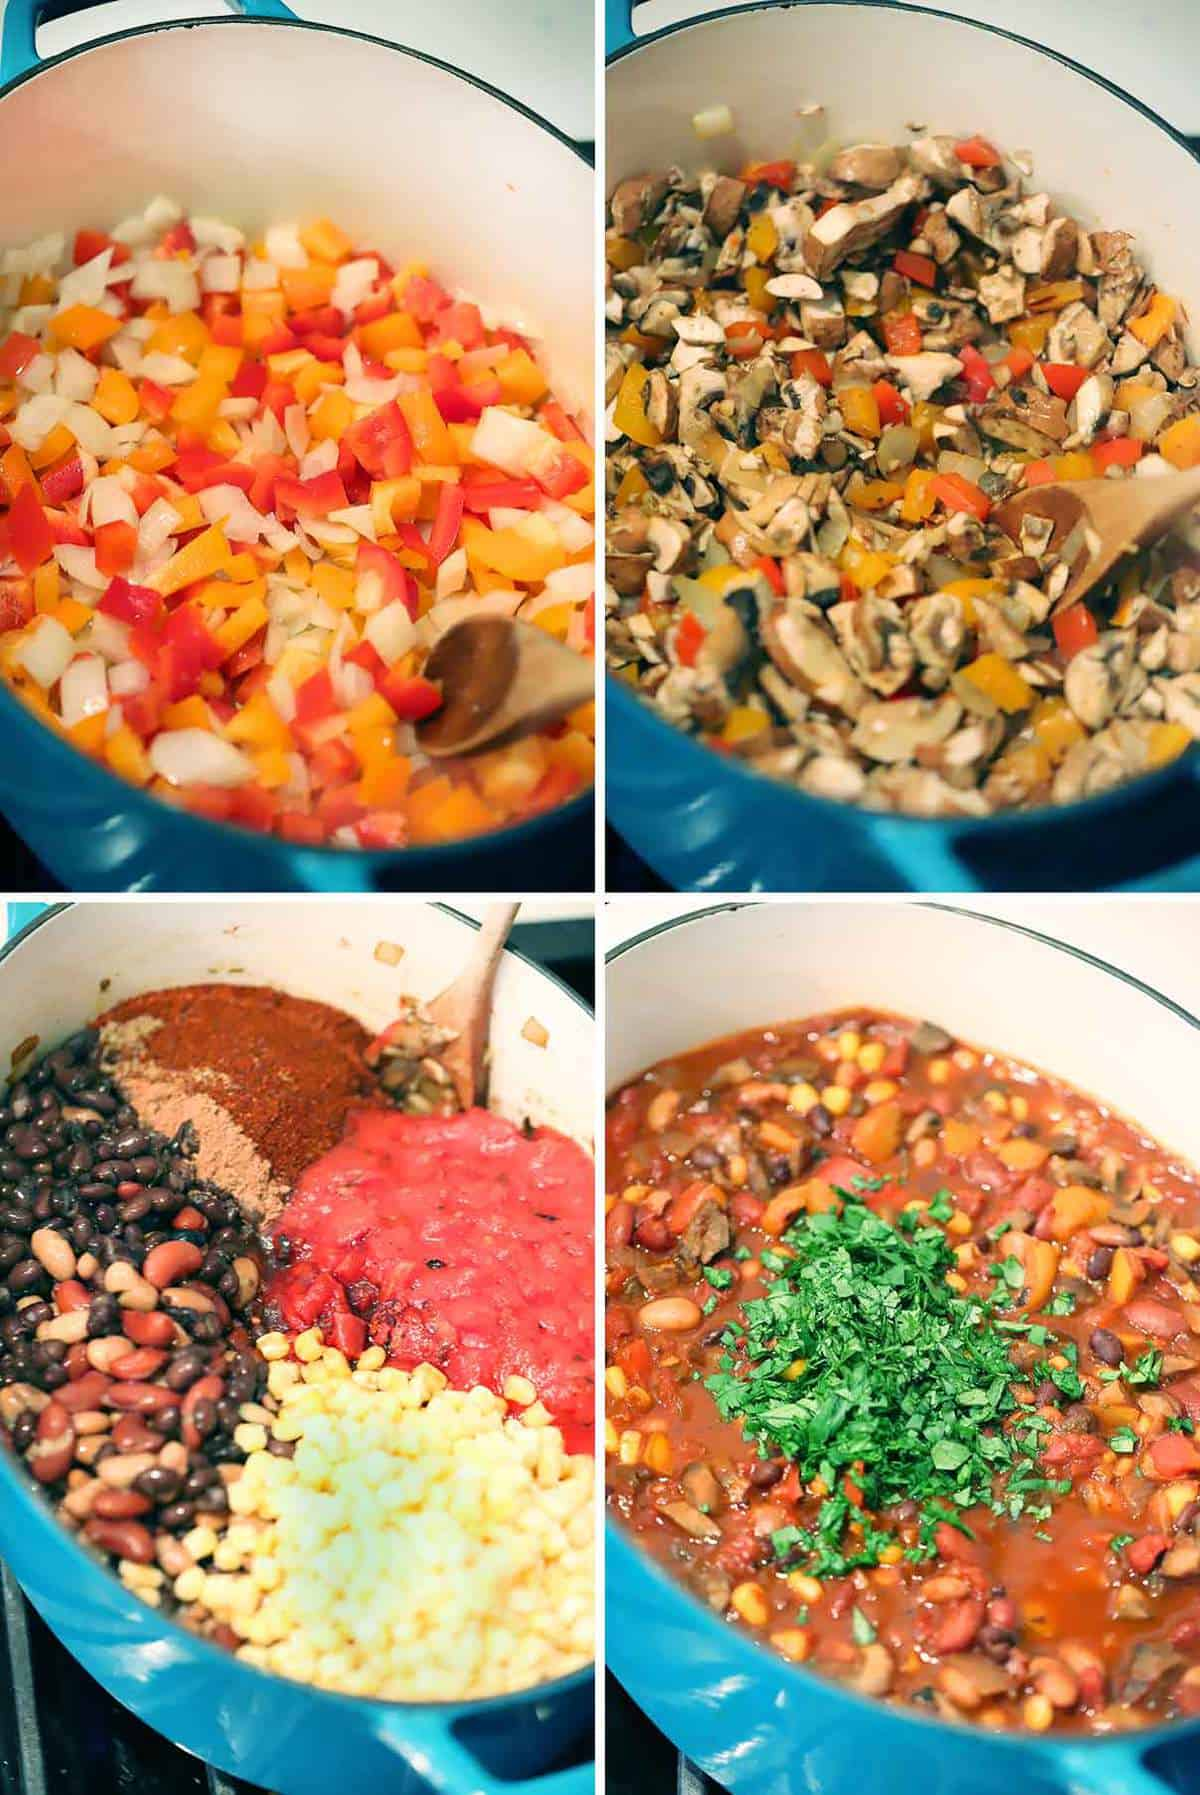 A photo collage showing how to make vegetarian chili.